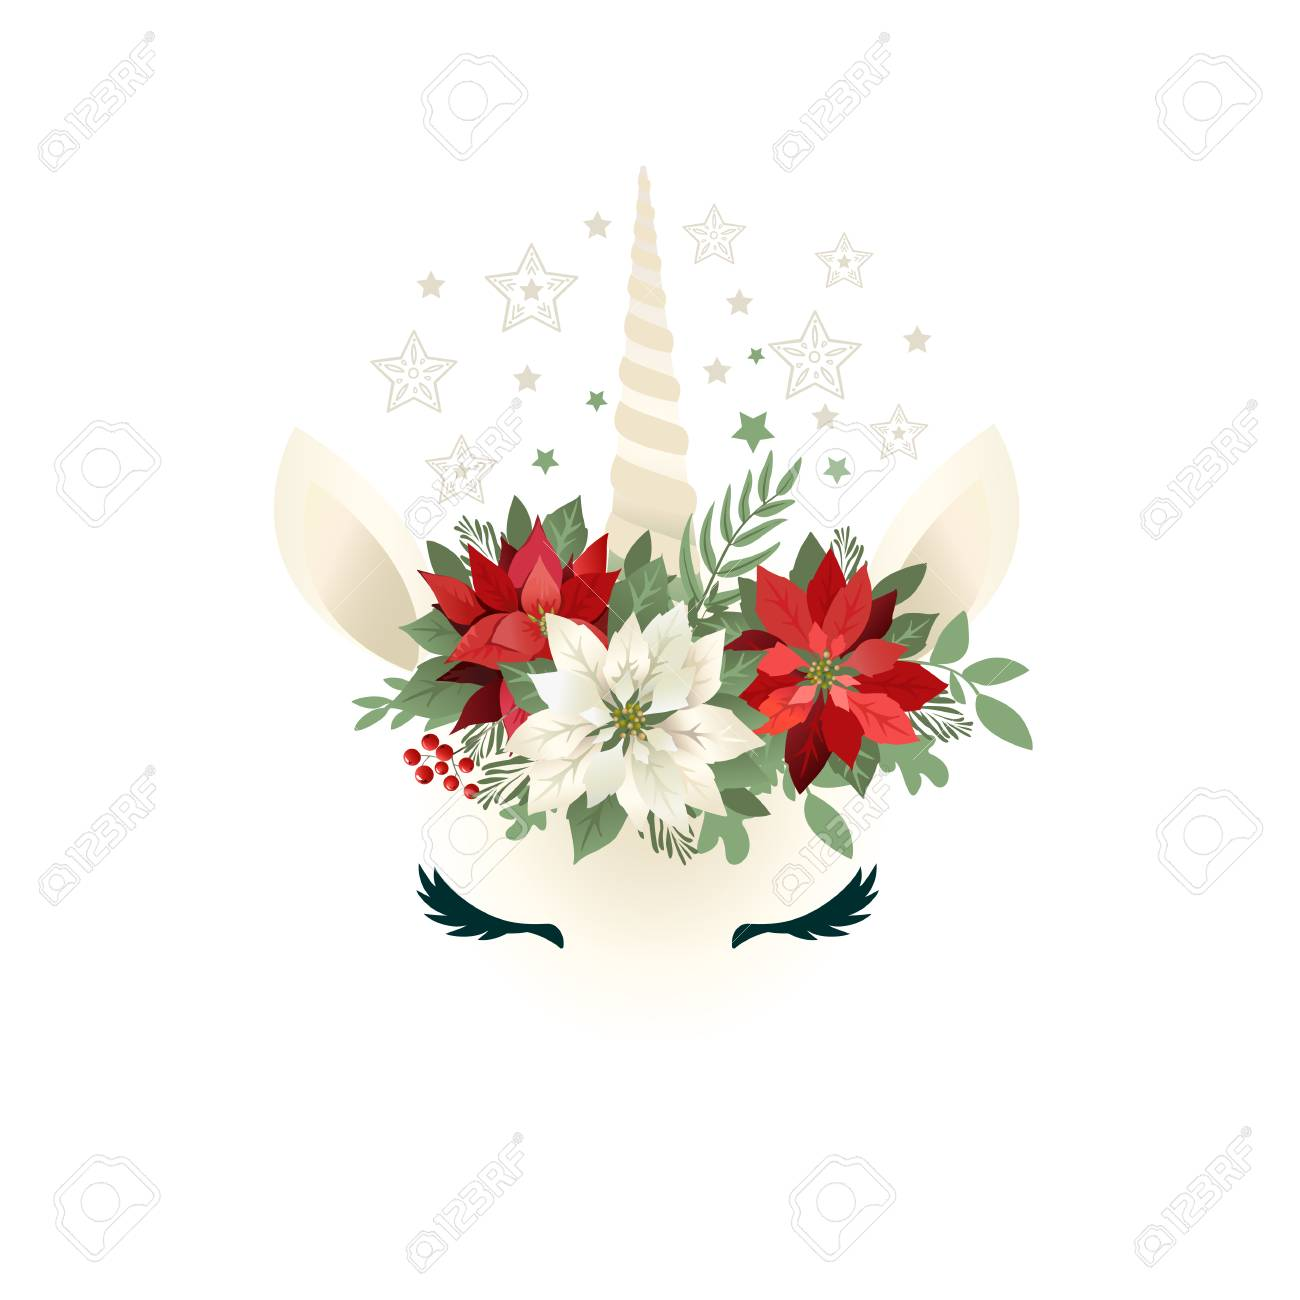 Head of hand drawn unicorn with floral wreath on white background. - 111200243